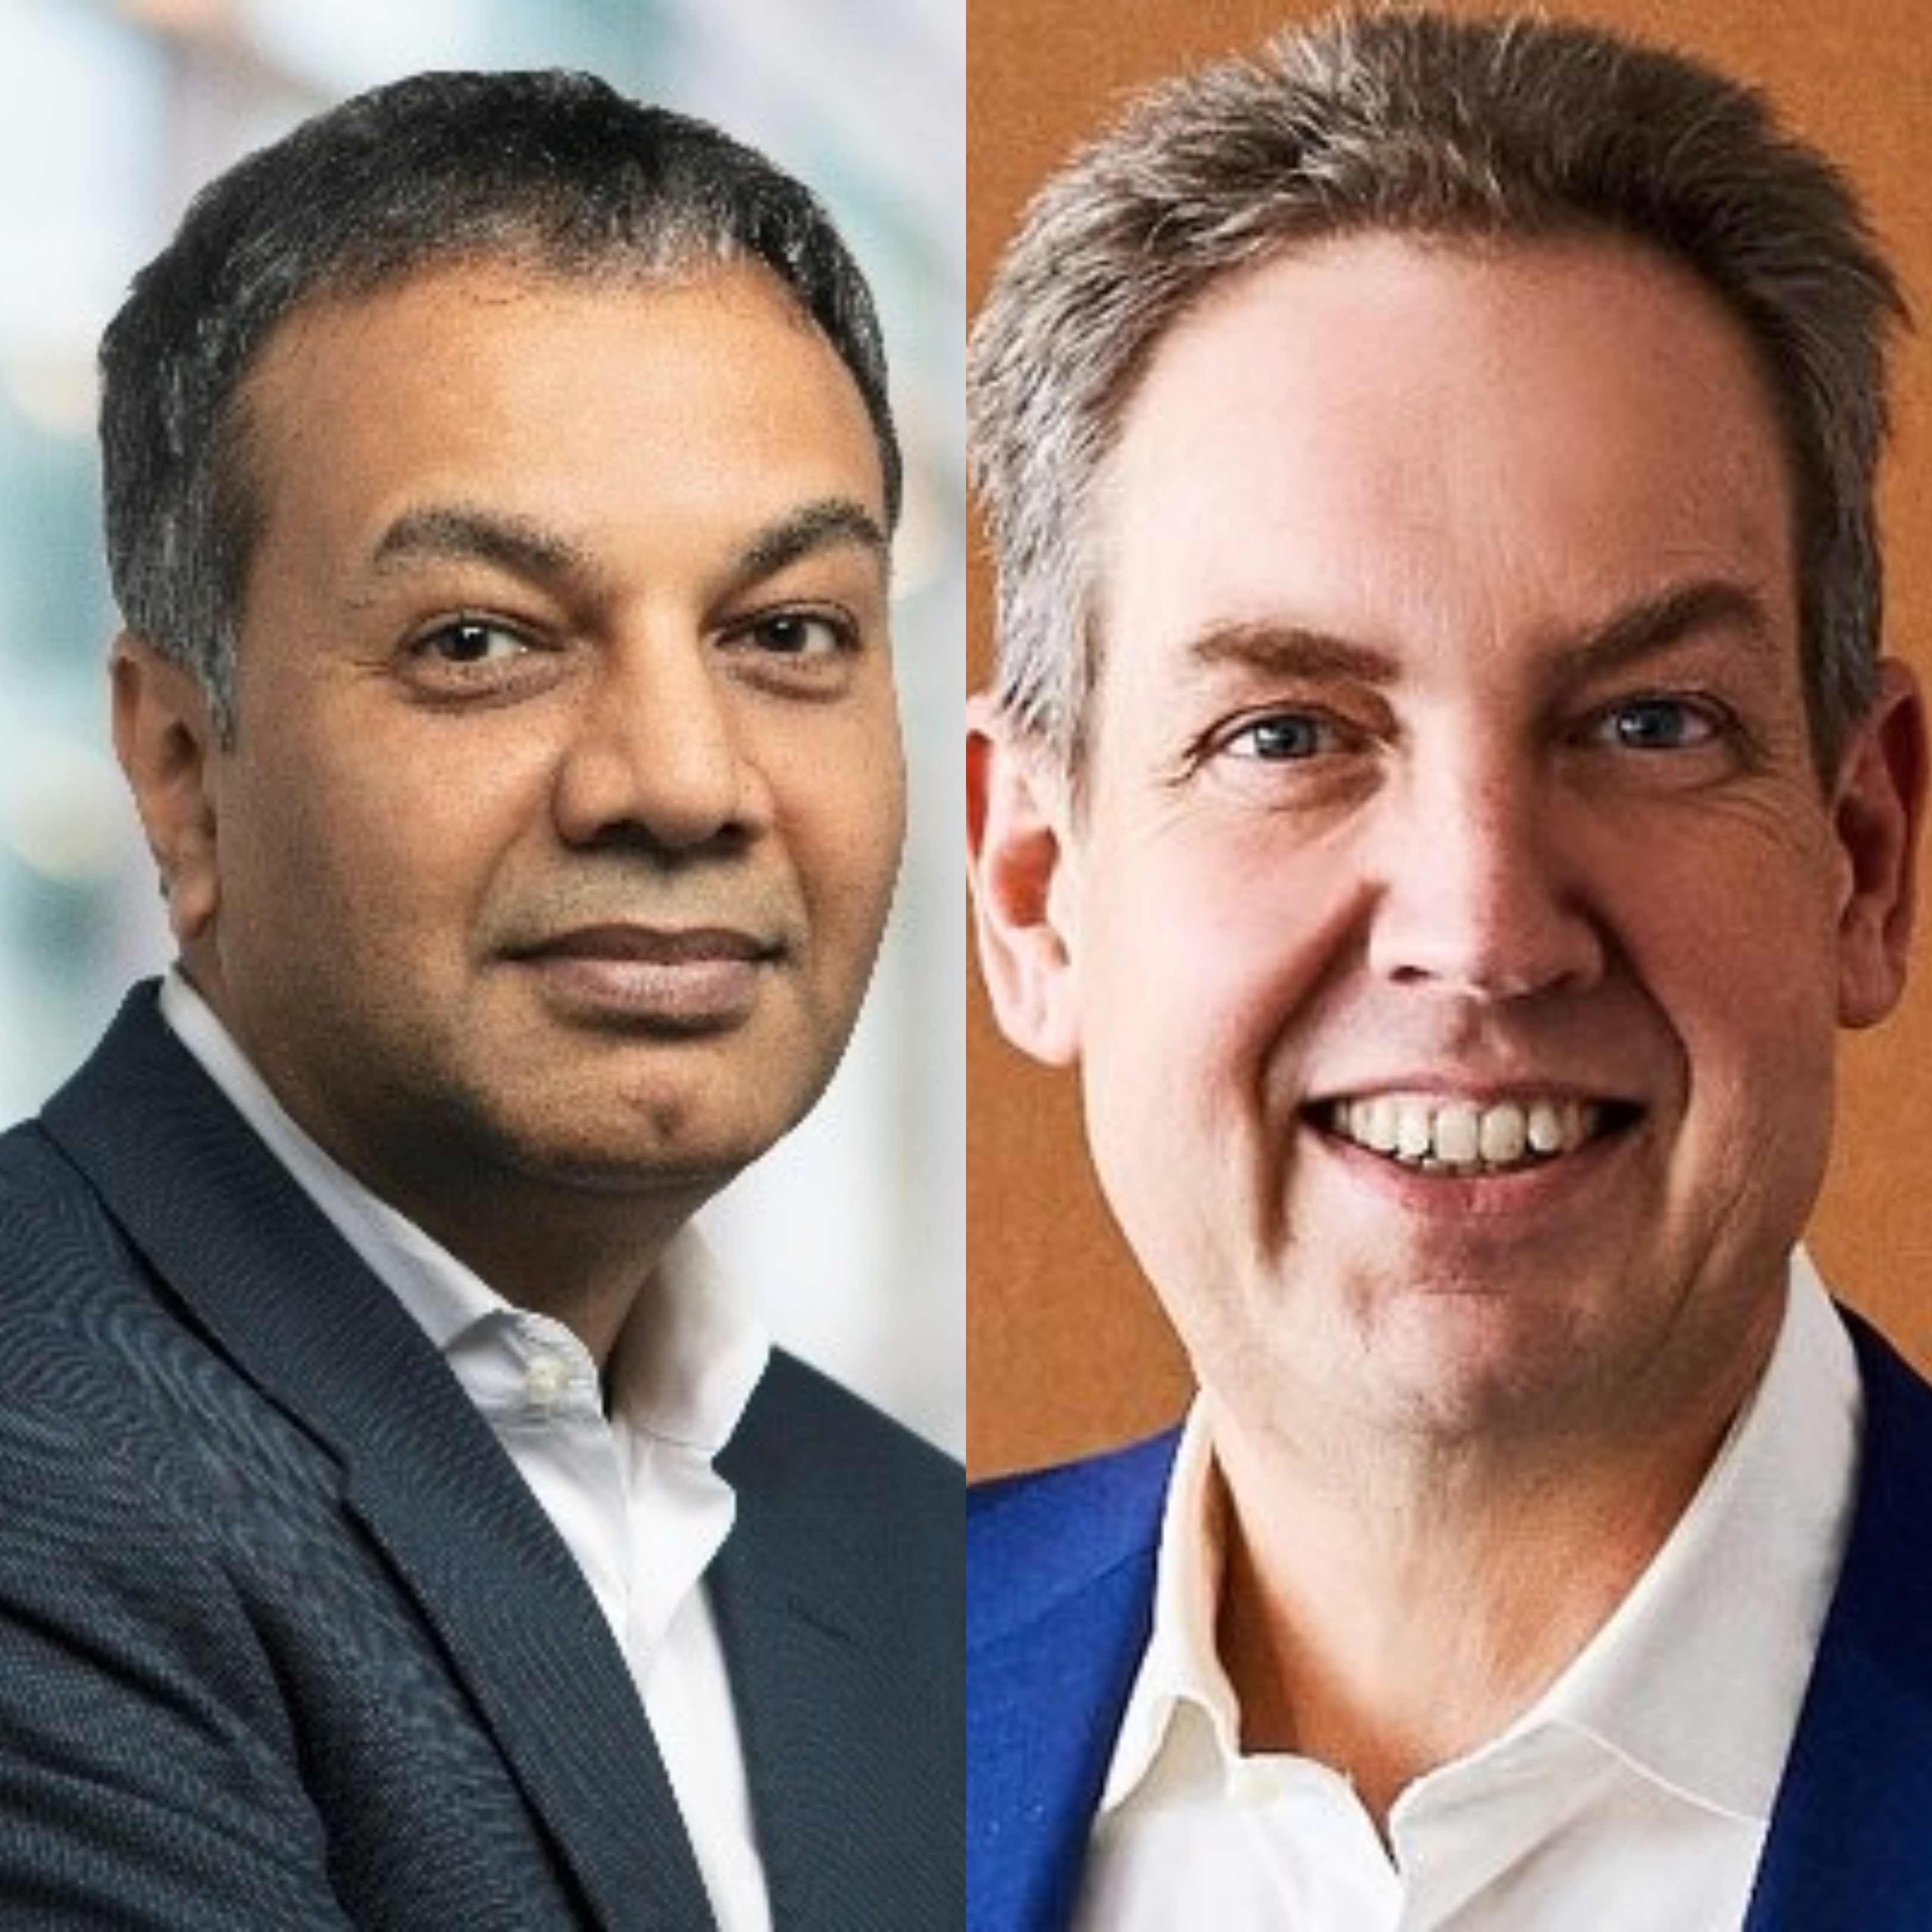 """Read more on the Forum Network: """"Closing vaccine borders provide a false sense of security. Enabling global flows allows vaccine supply chains to deliver more vaccines to all"""" by Prashant Yadav, Professor, INSAED & Jan C. Fransoo, Professor, Tilburg University"""